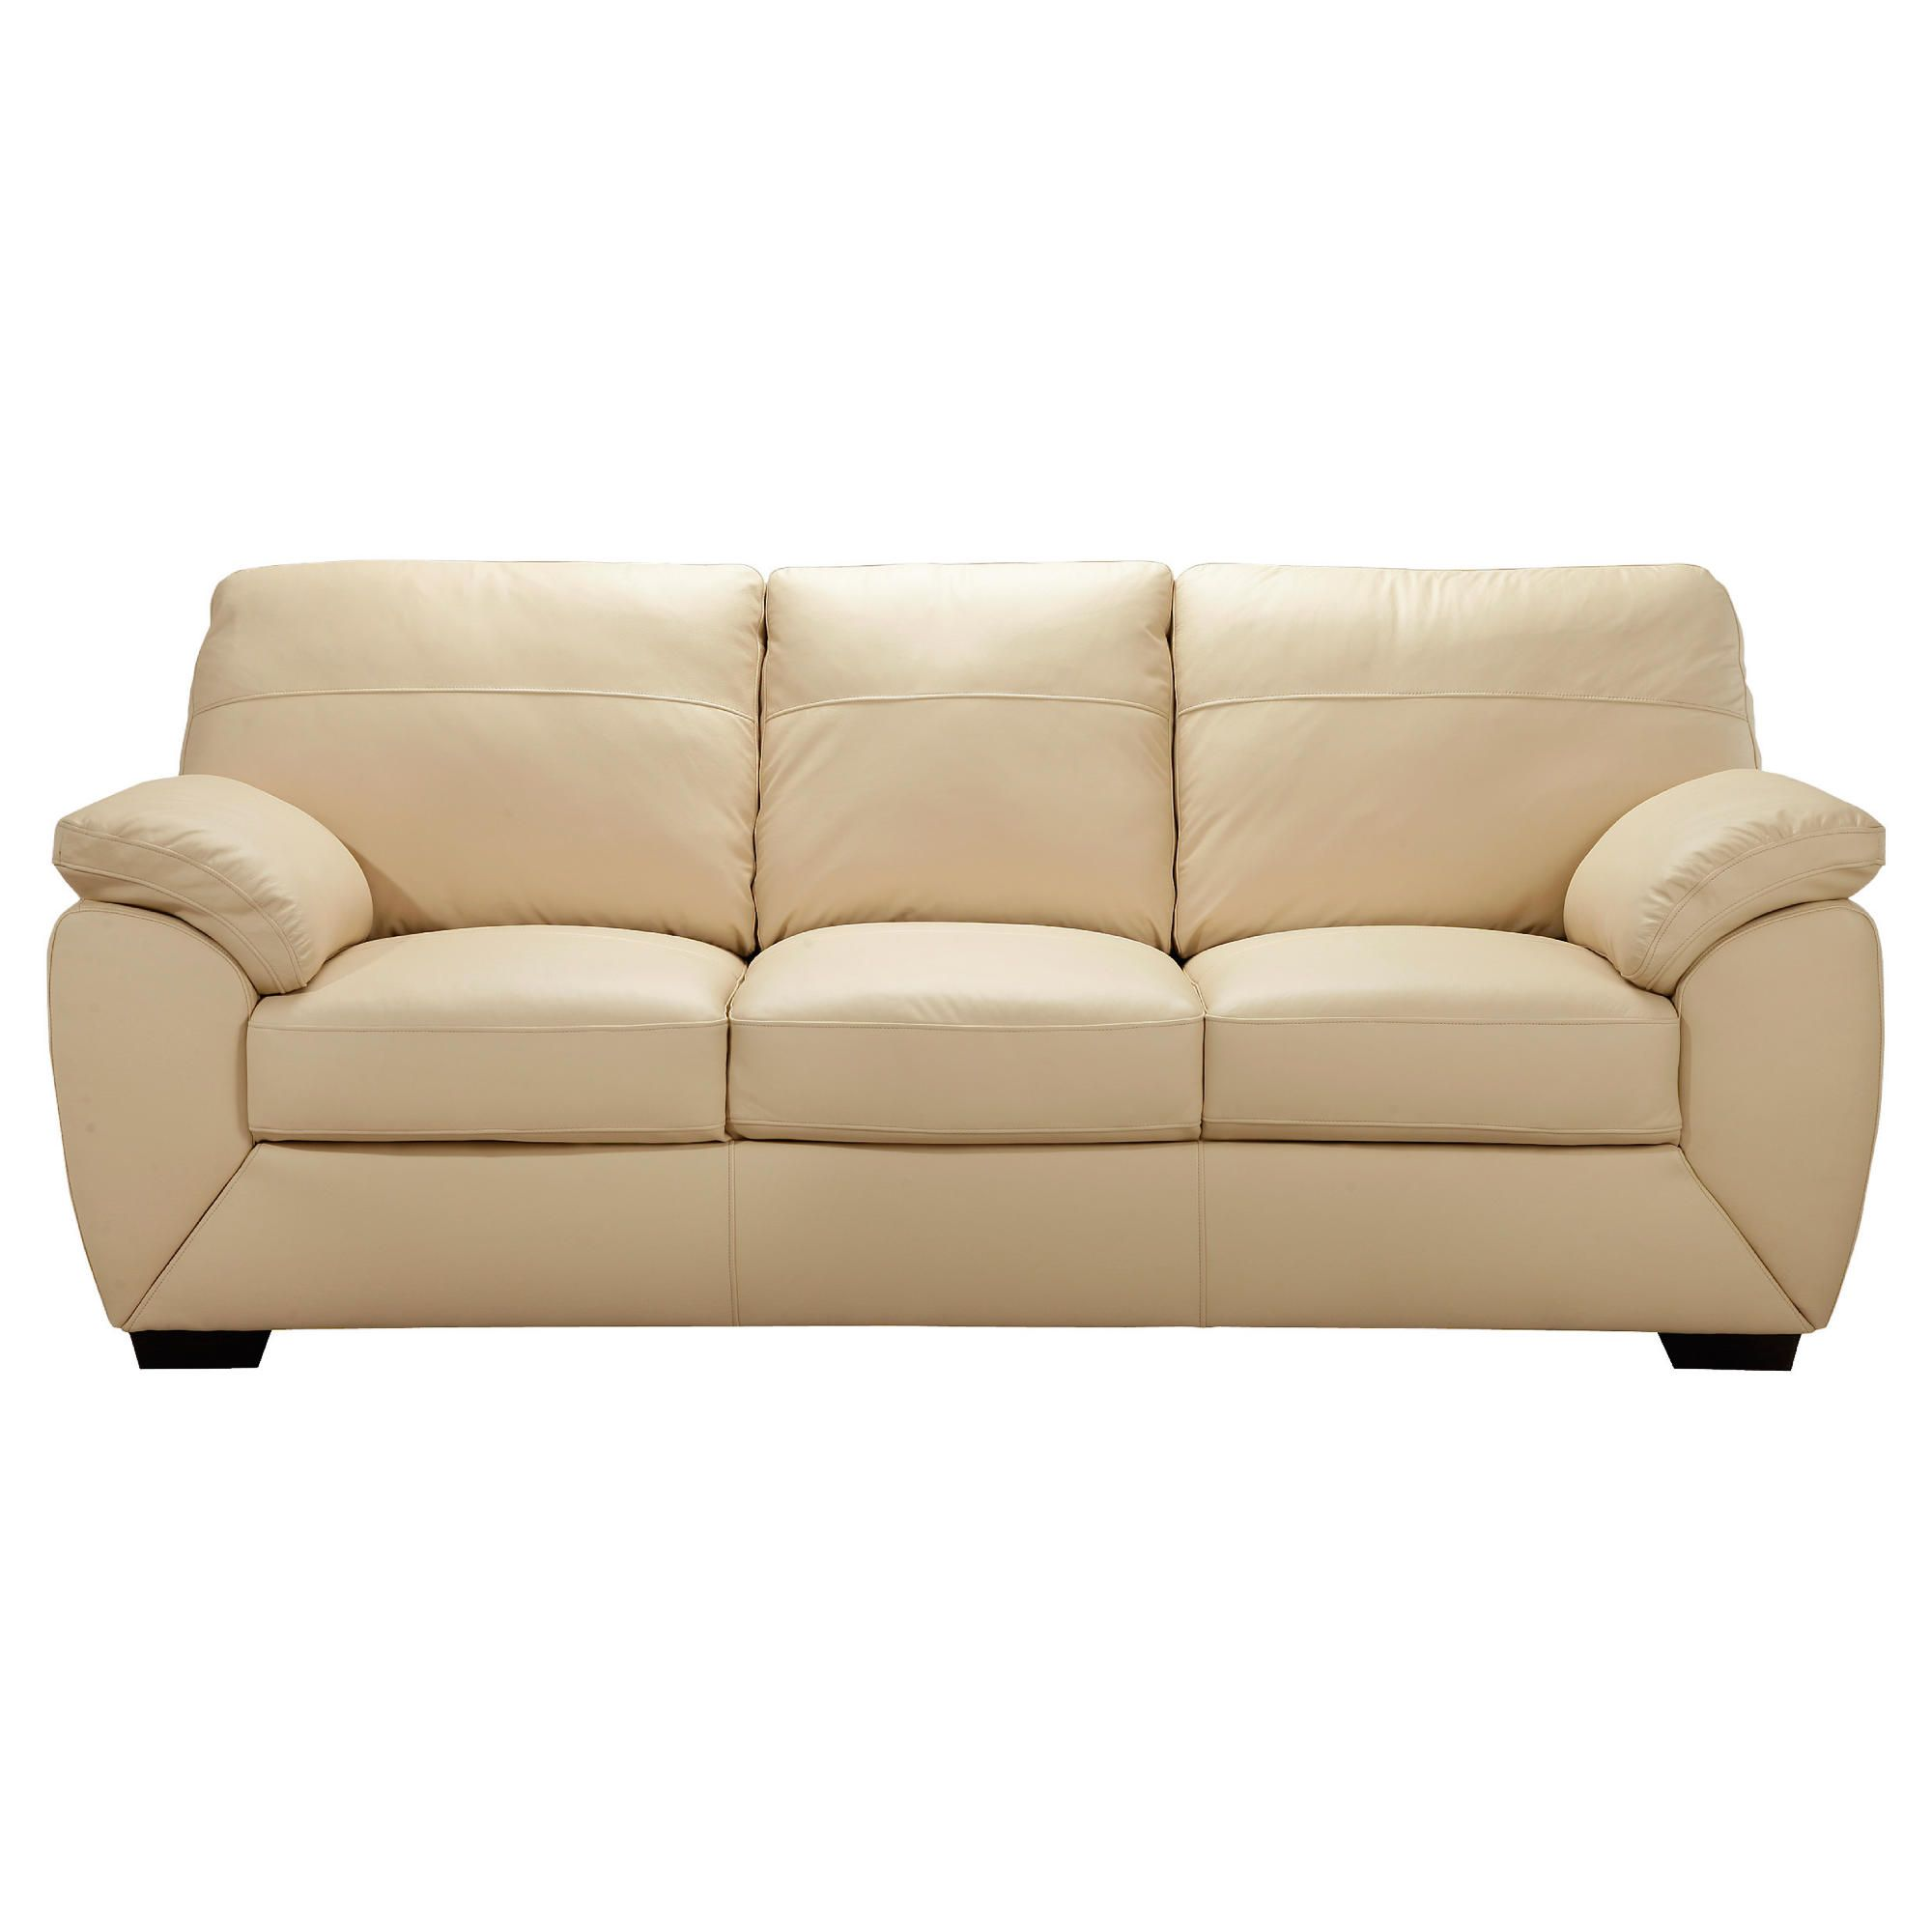 Alberta Large Leather Sofa, Ivory at Tesco Direct